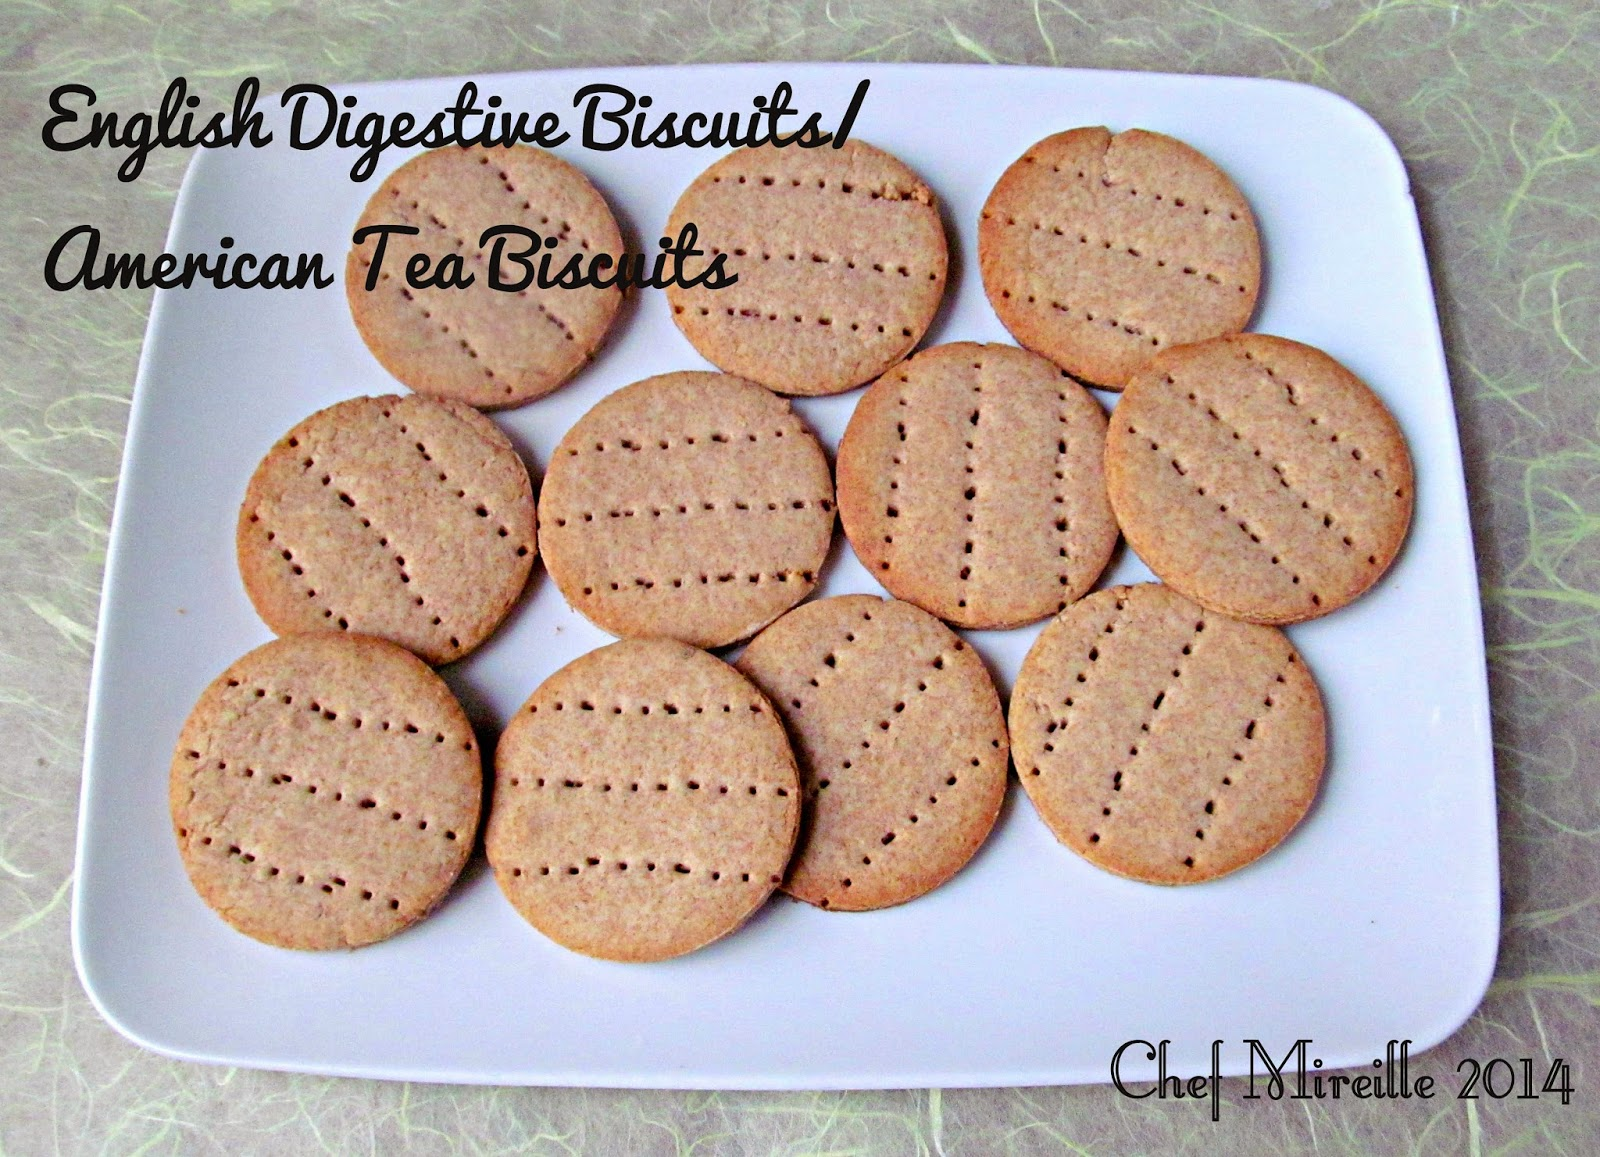 american tea biscuits...english digestive biscuits